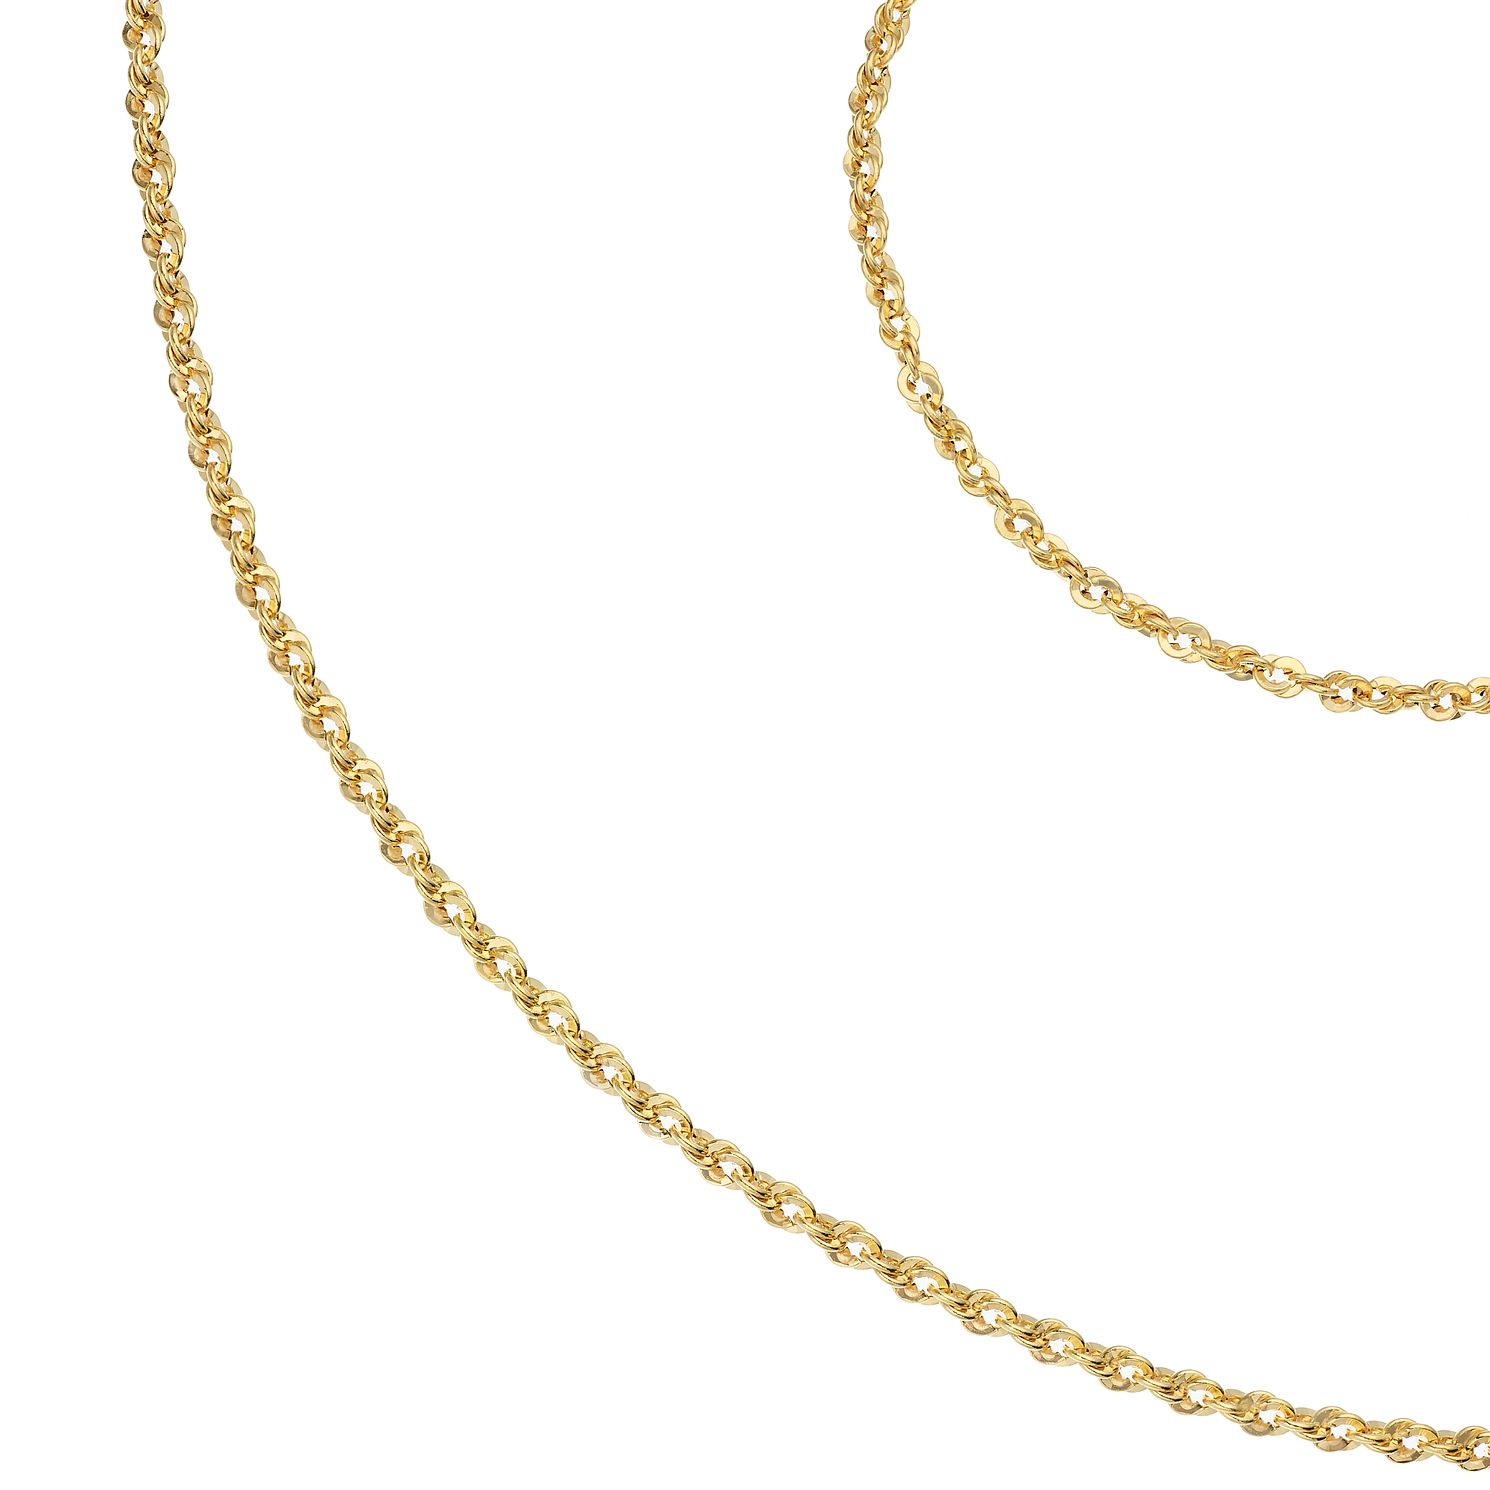 9ct Yellow Gold Rope Chain Bracelet & Necklace Gift Set - Product number 1020870